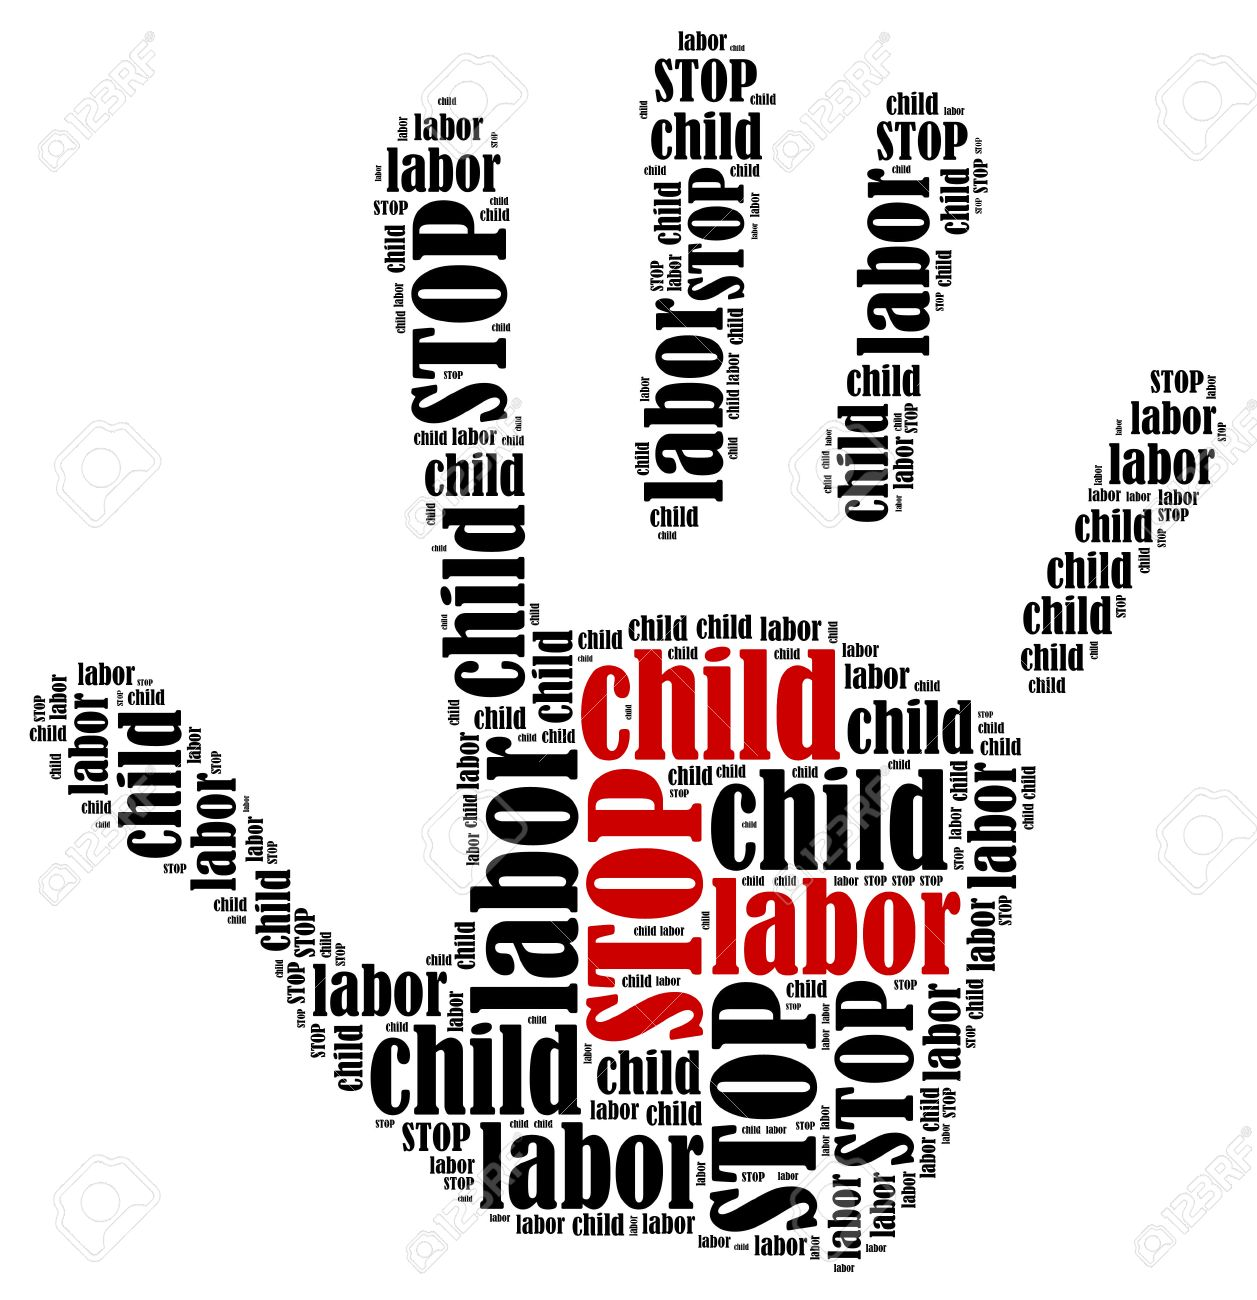 Does Child Labor really effect children? If so, how?